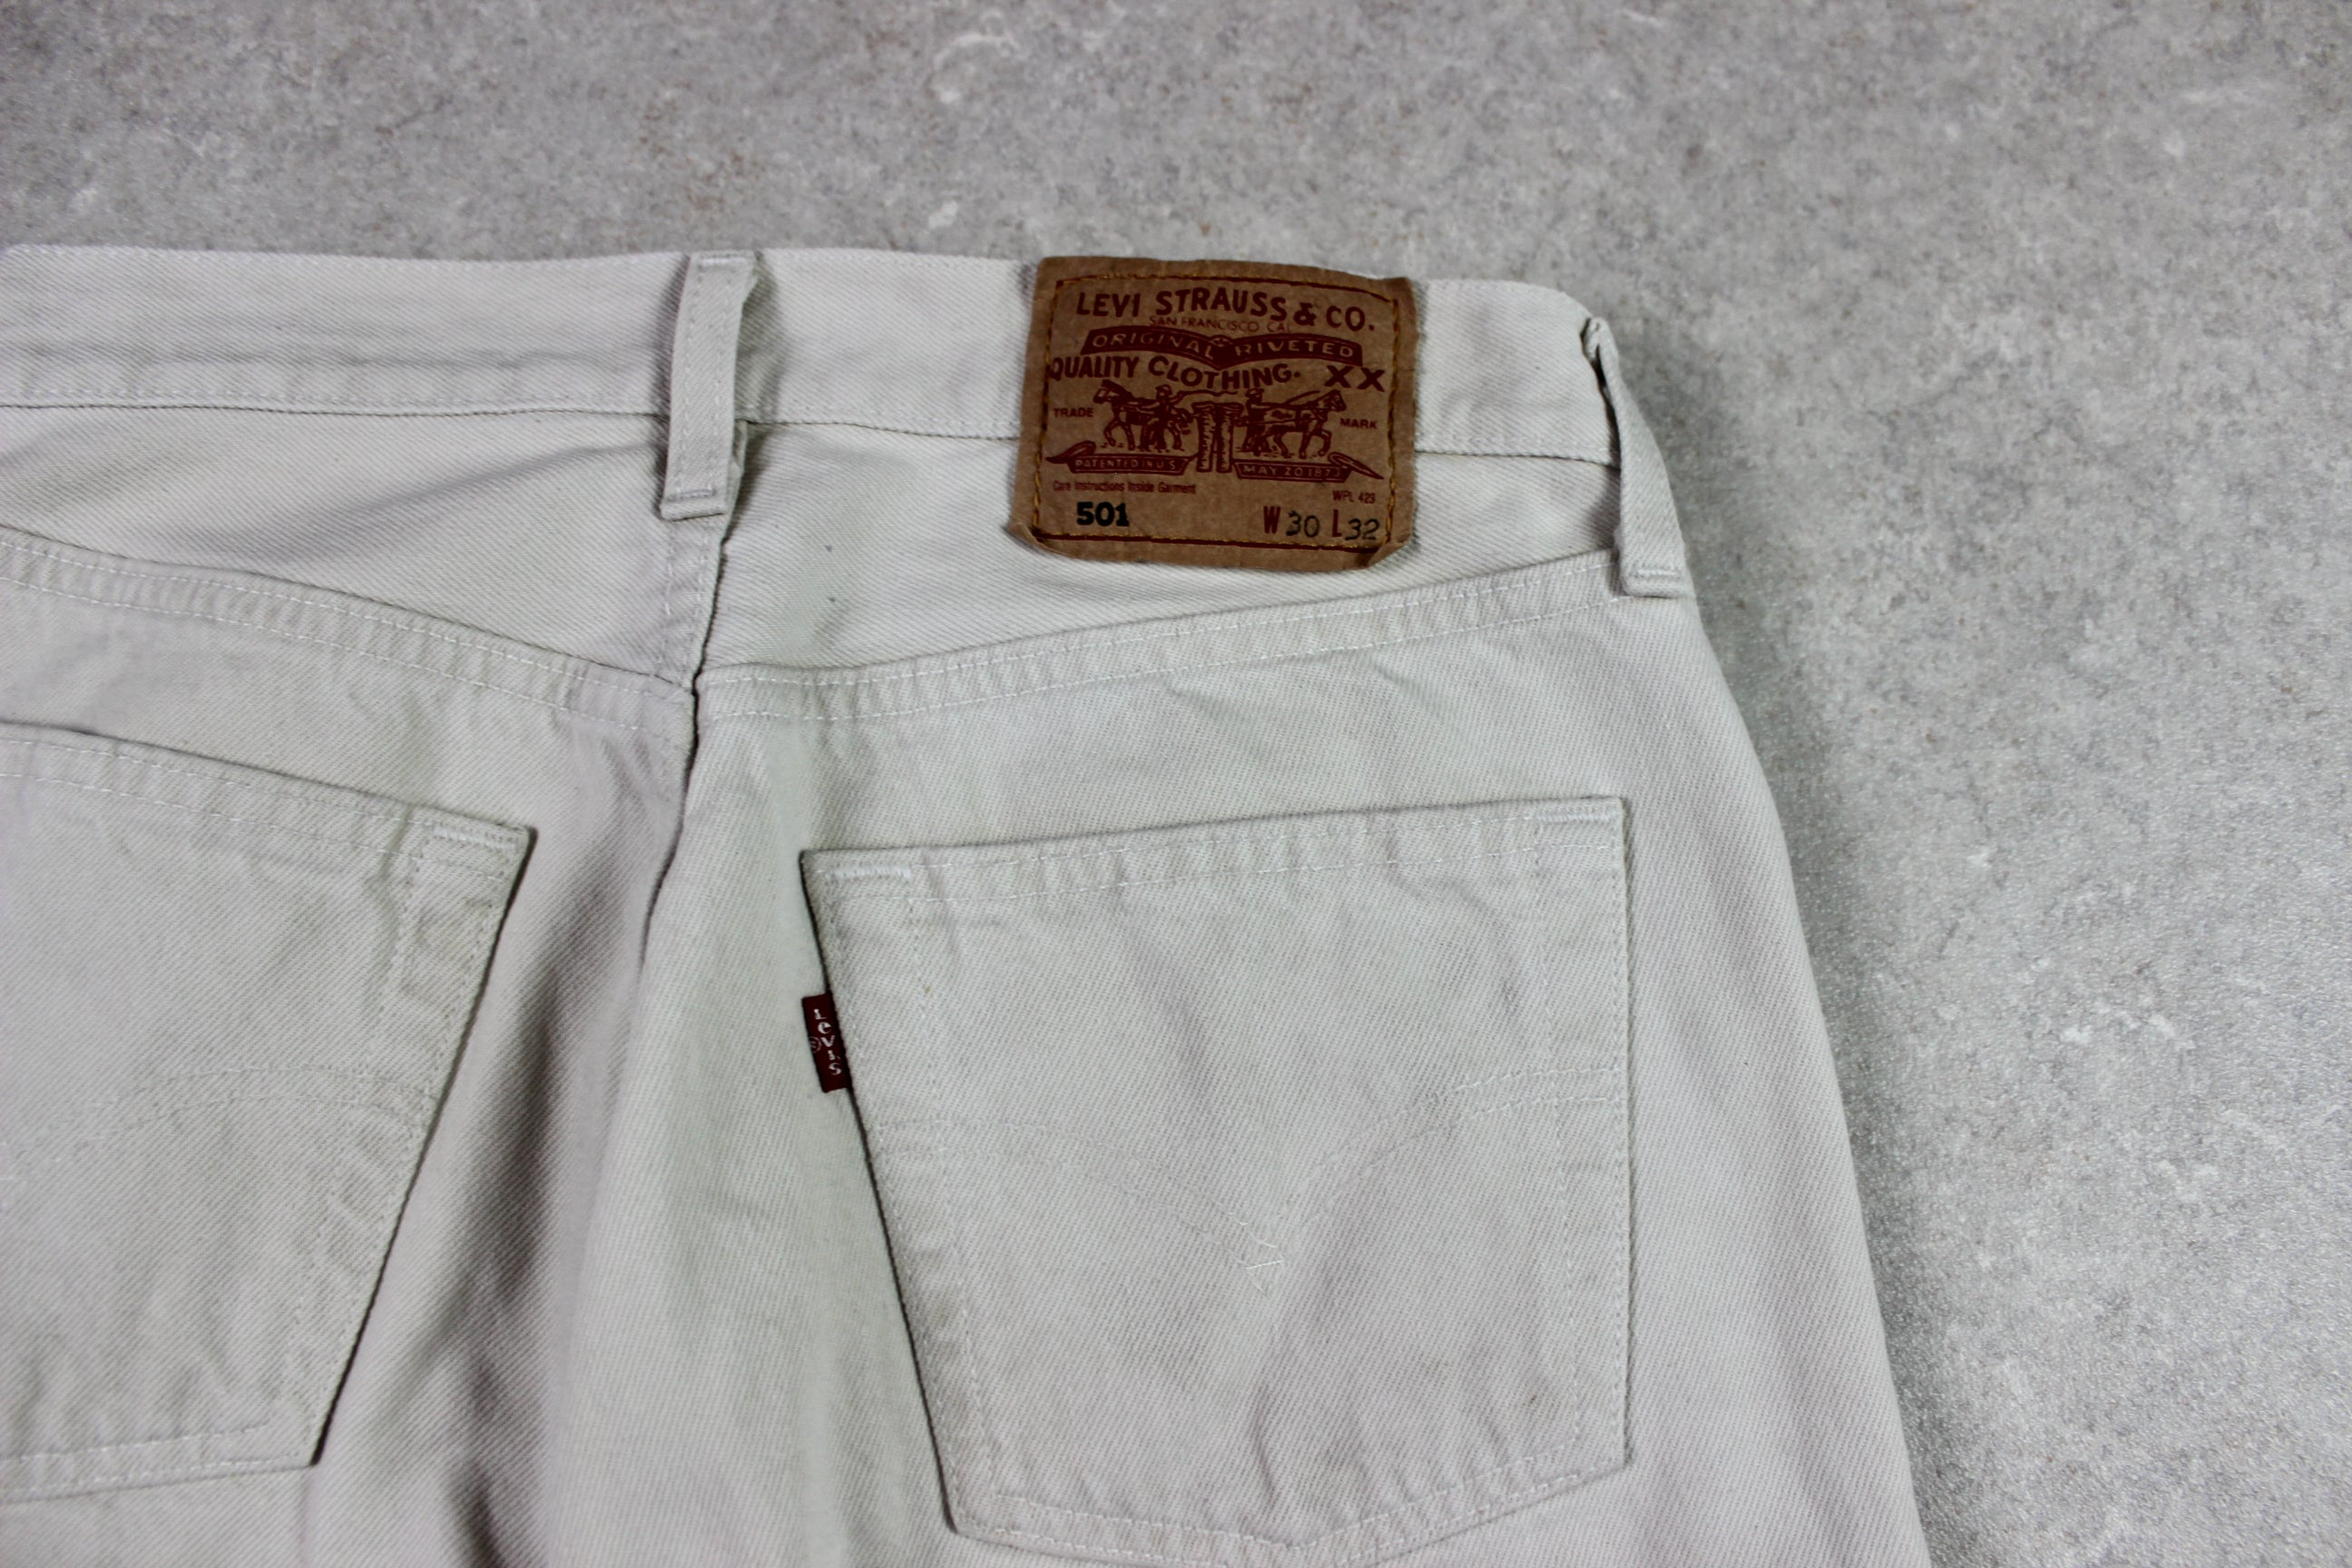 Levi's - 501 Jeans Made in UK - Beige - 30/32